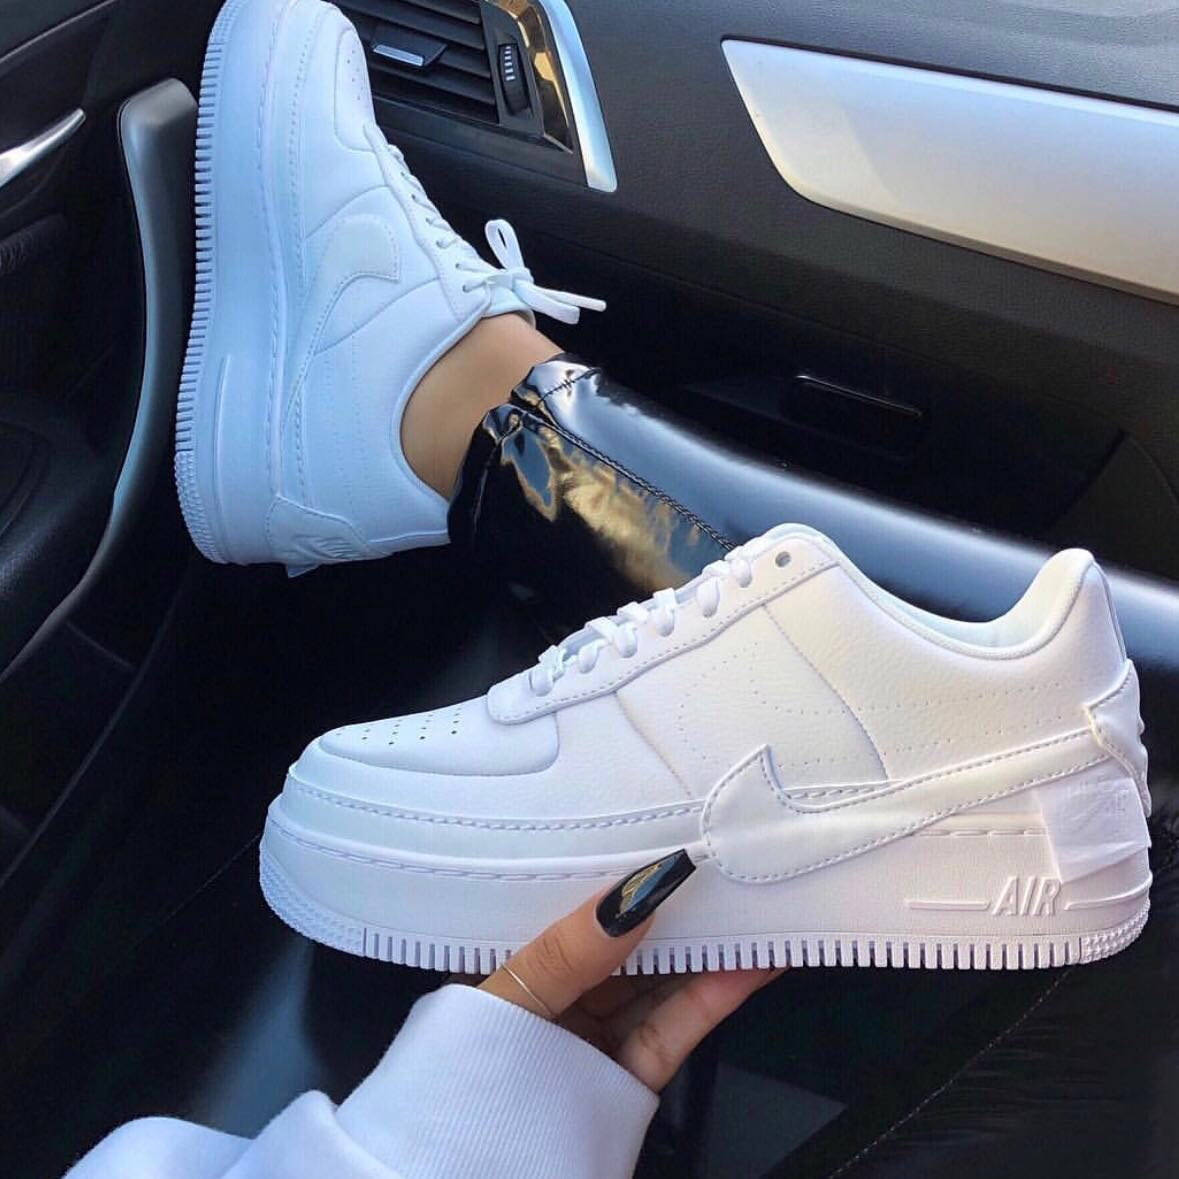 e72d12c6cf nike air force 1 jester xx, Women's Fashion, Shoes, Sneakers on ...